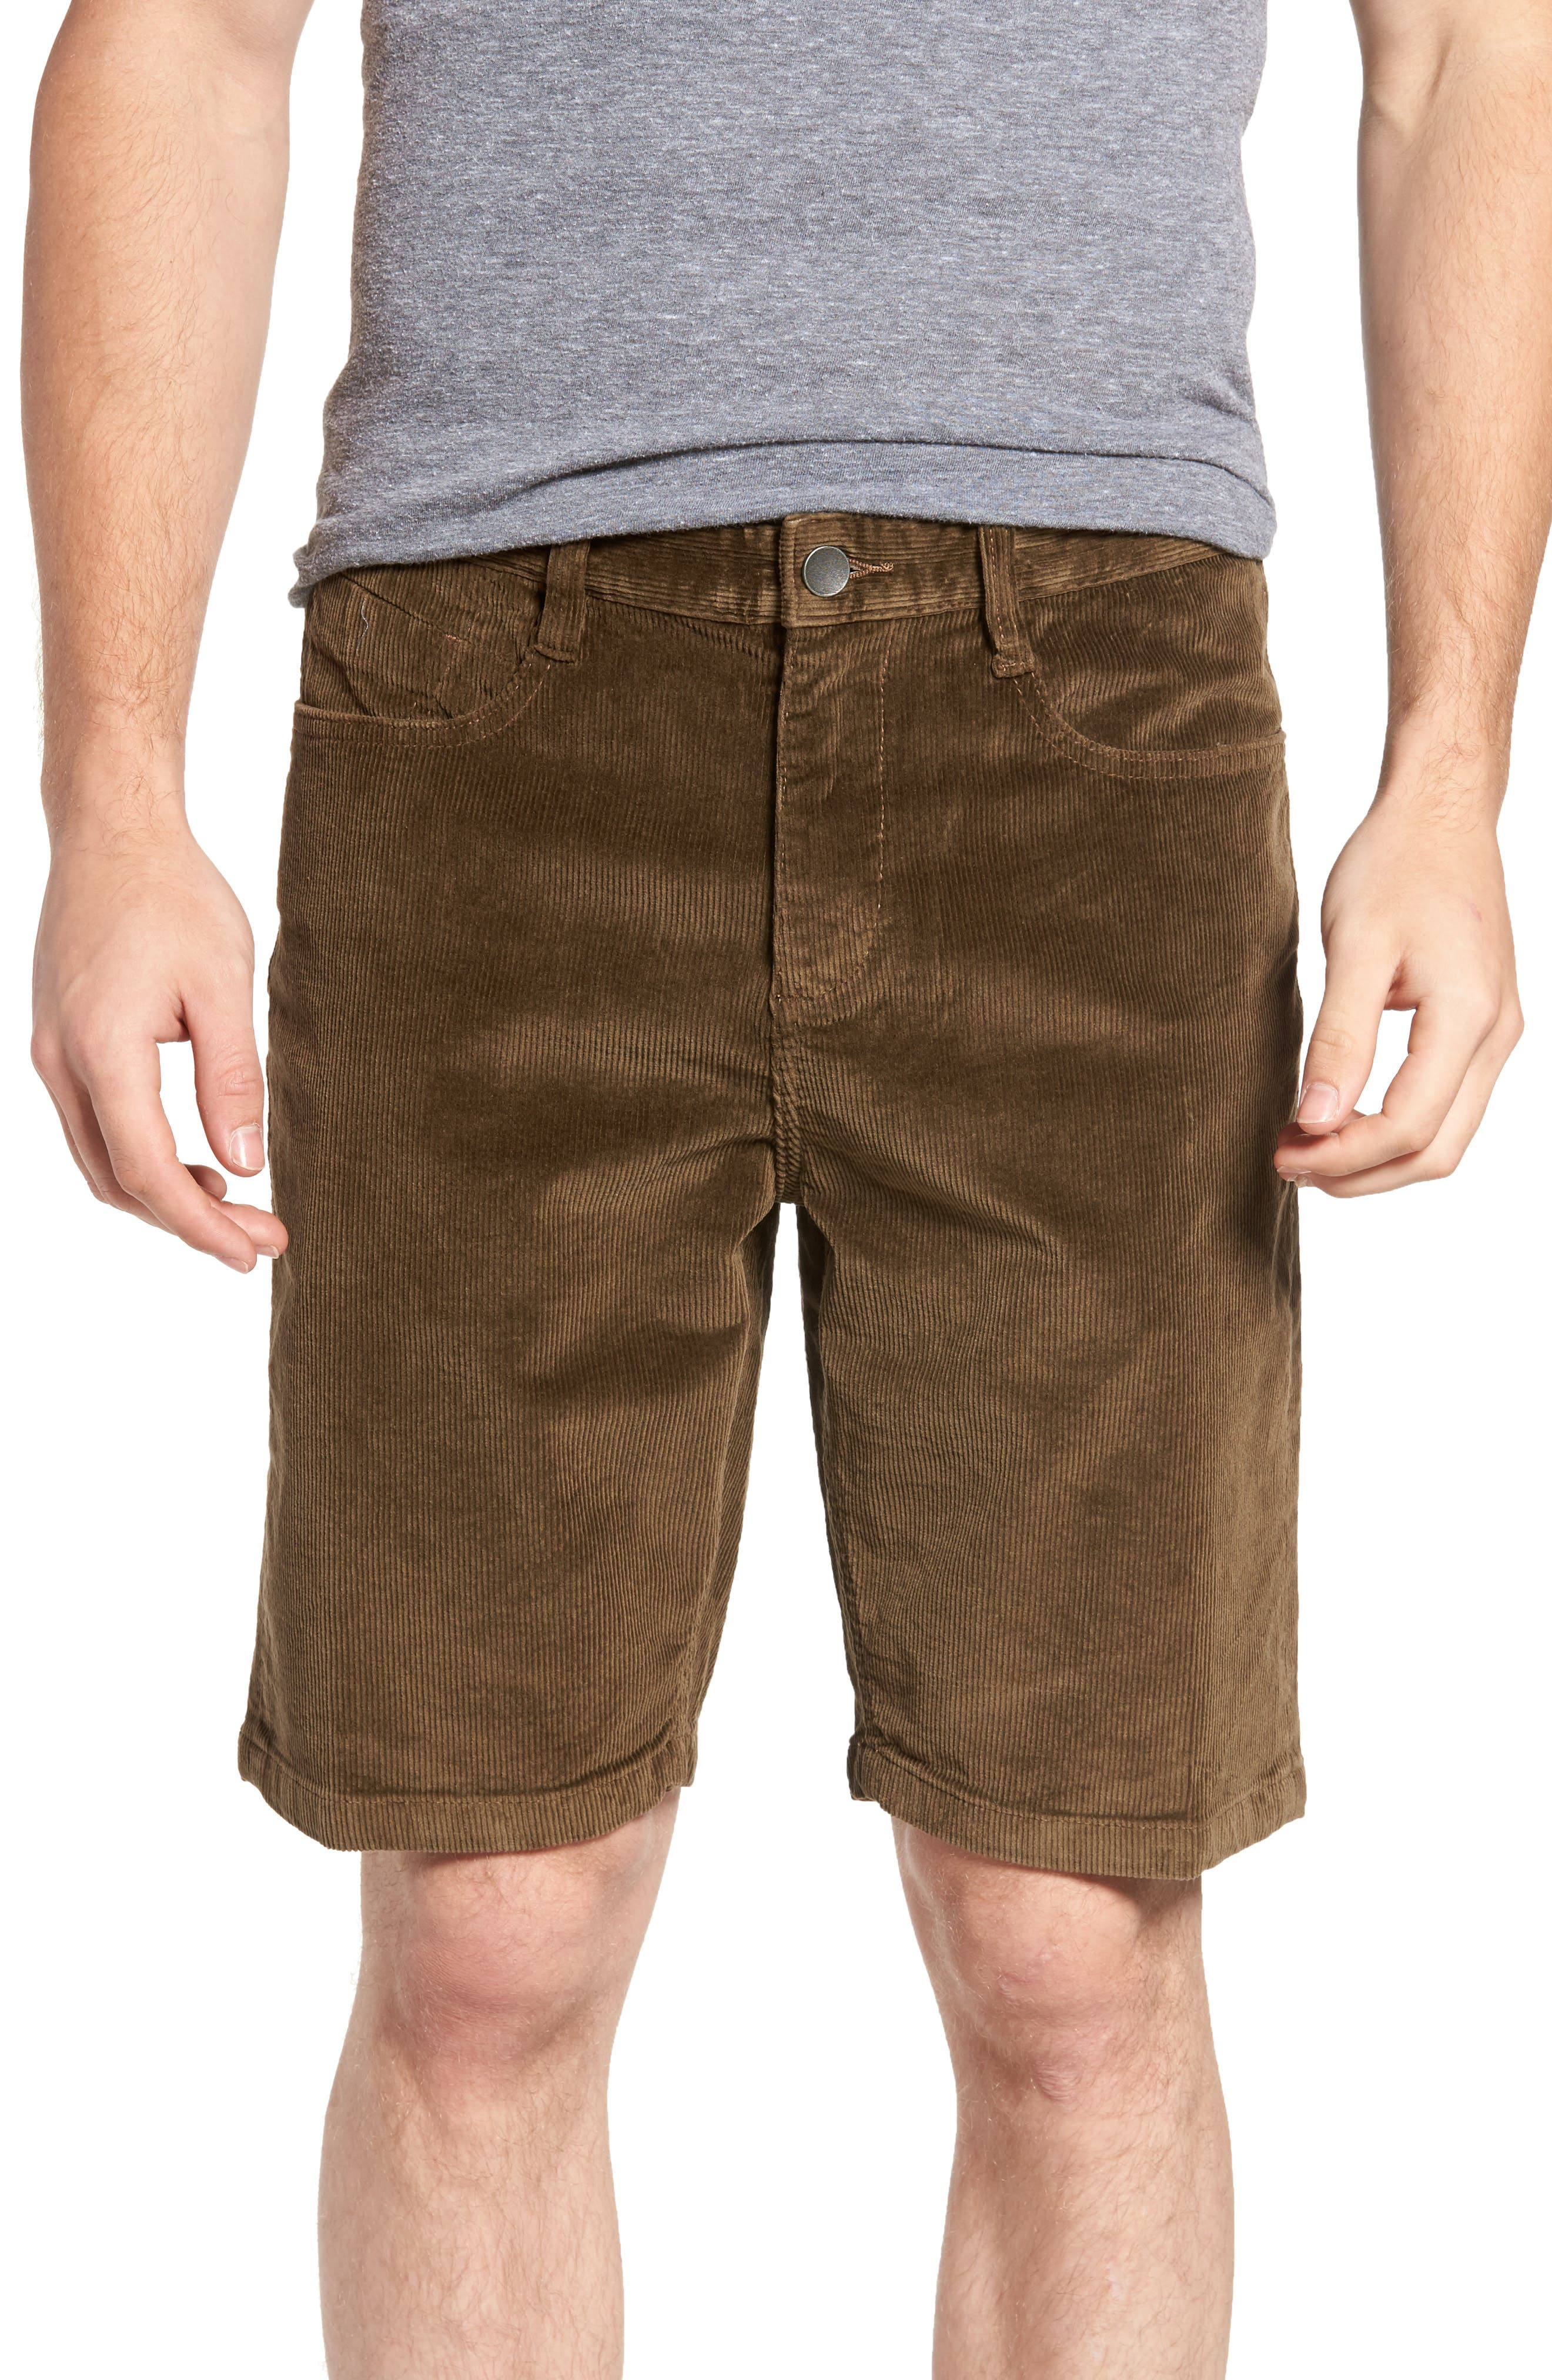 Outsider Corduroy Shorts,                         Main,                         color, Brown